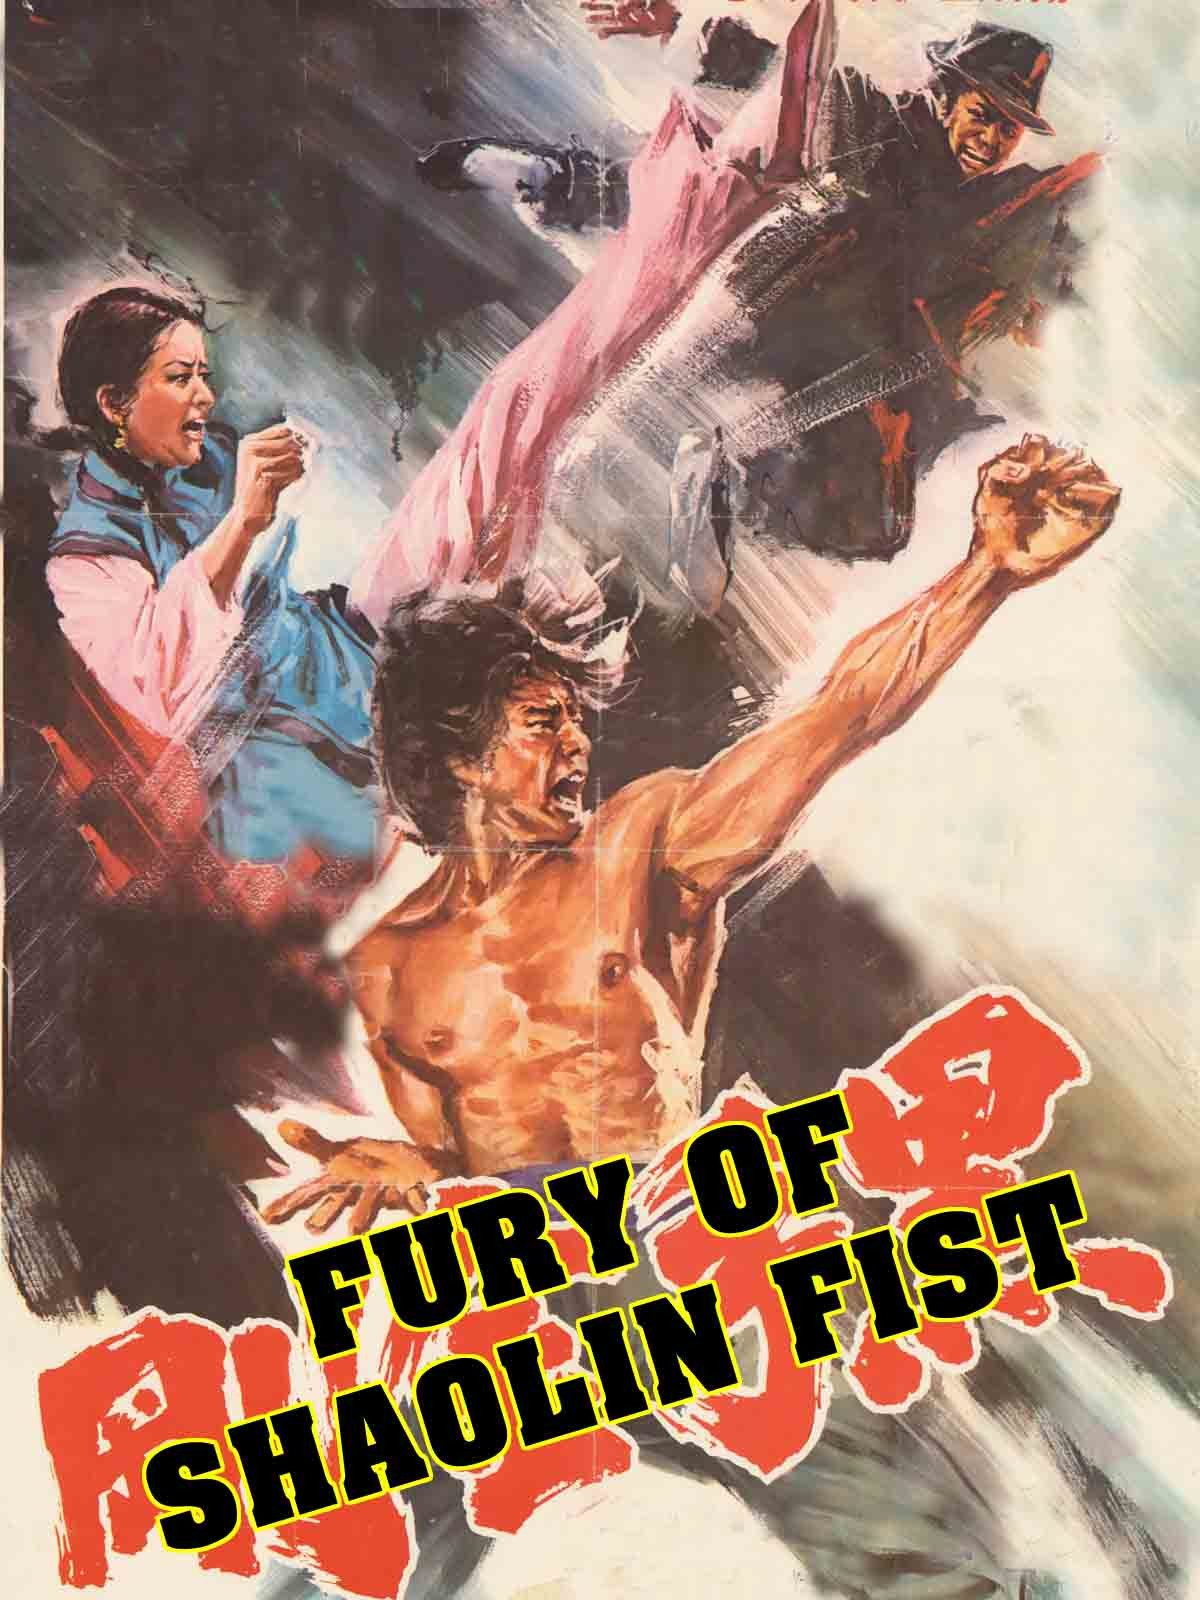 Fury Of Shaolin Fist